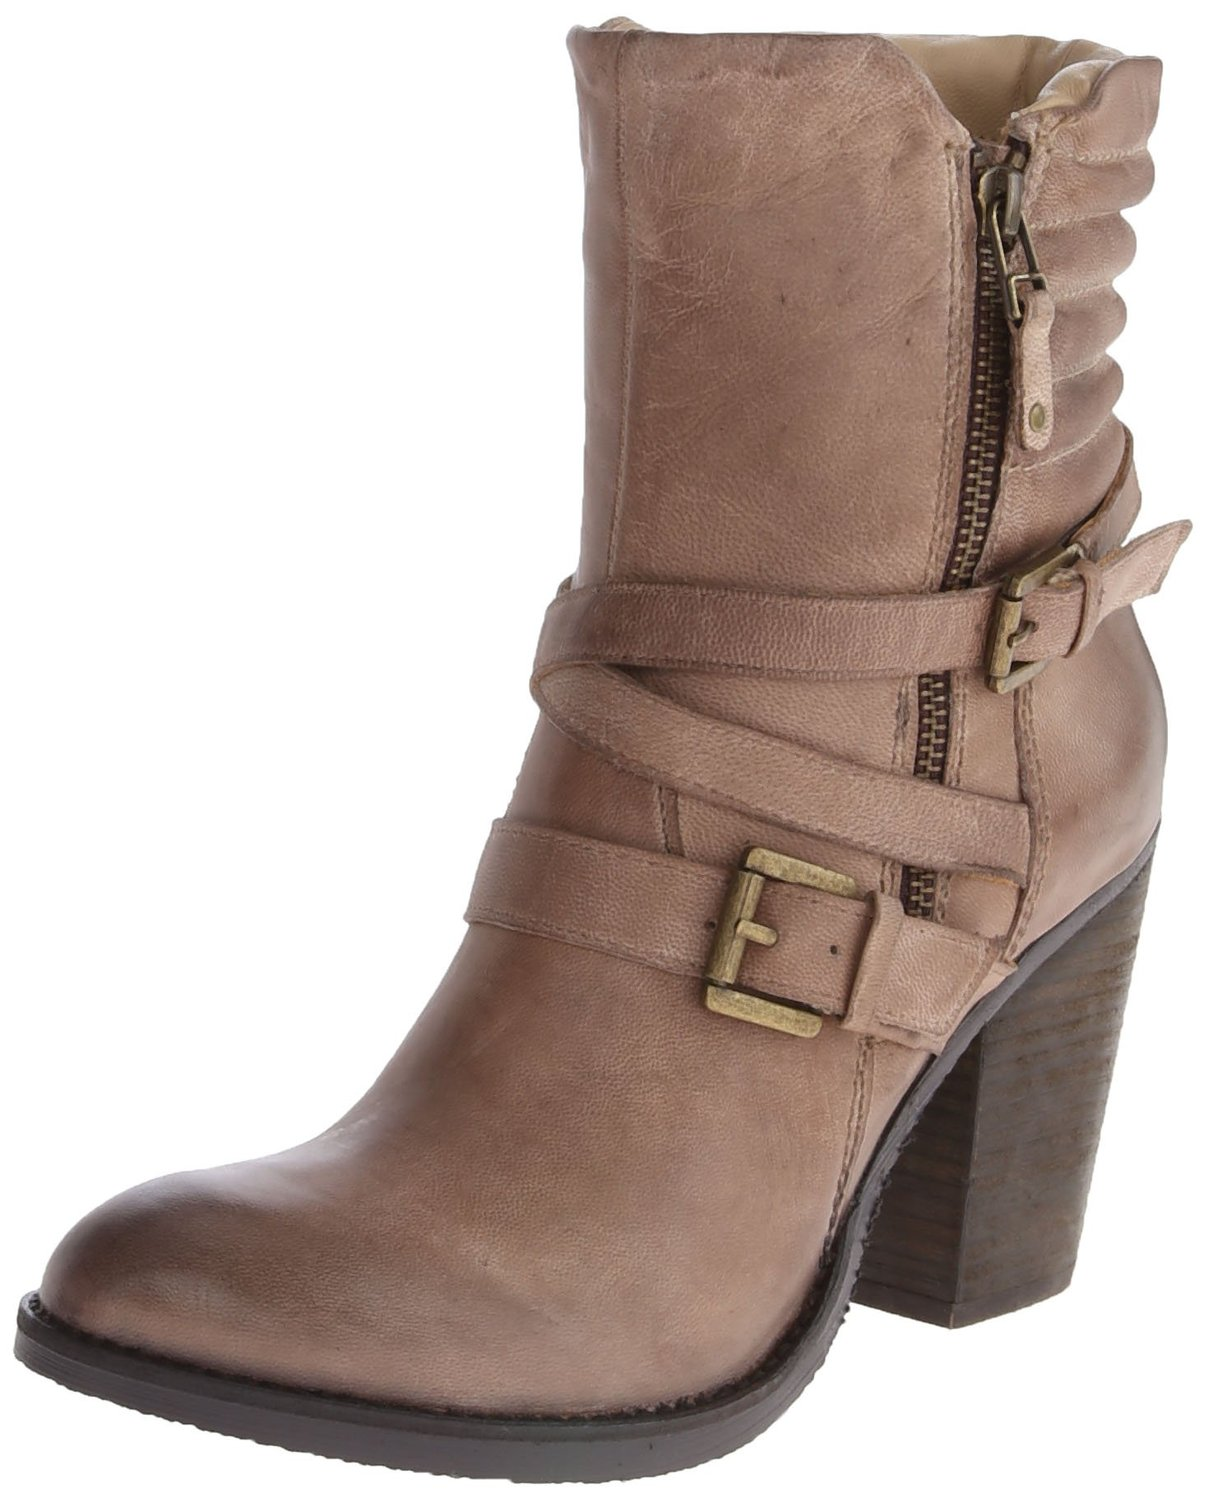 34894d58ab Steve Madden Raleighh Motorcycle Boot Stone